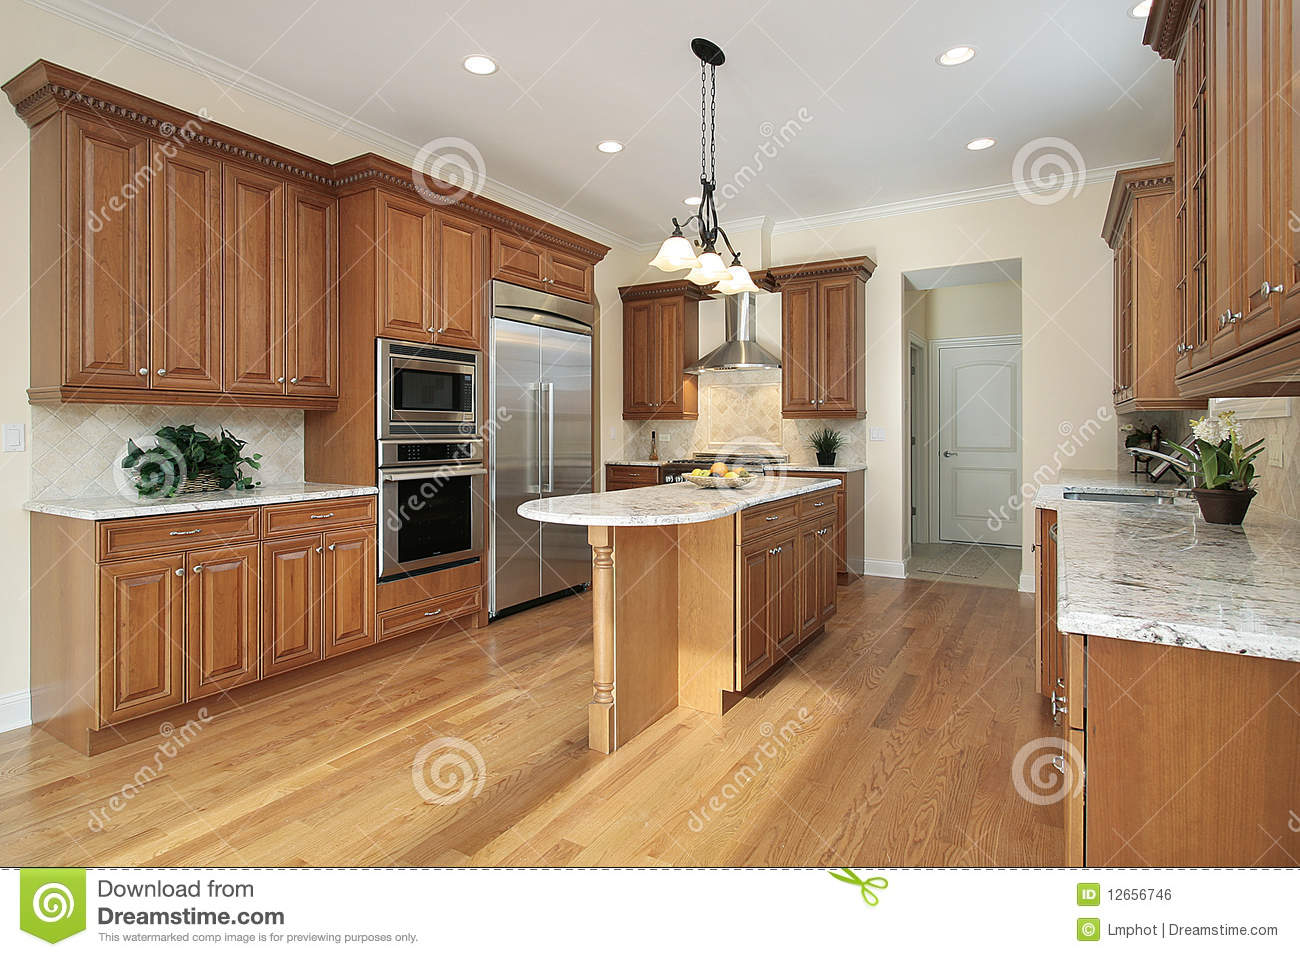 Kitchen in new construction home royalty free stock image for Building a new kitchen